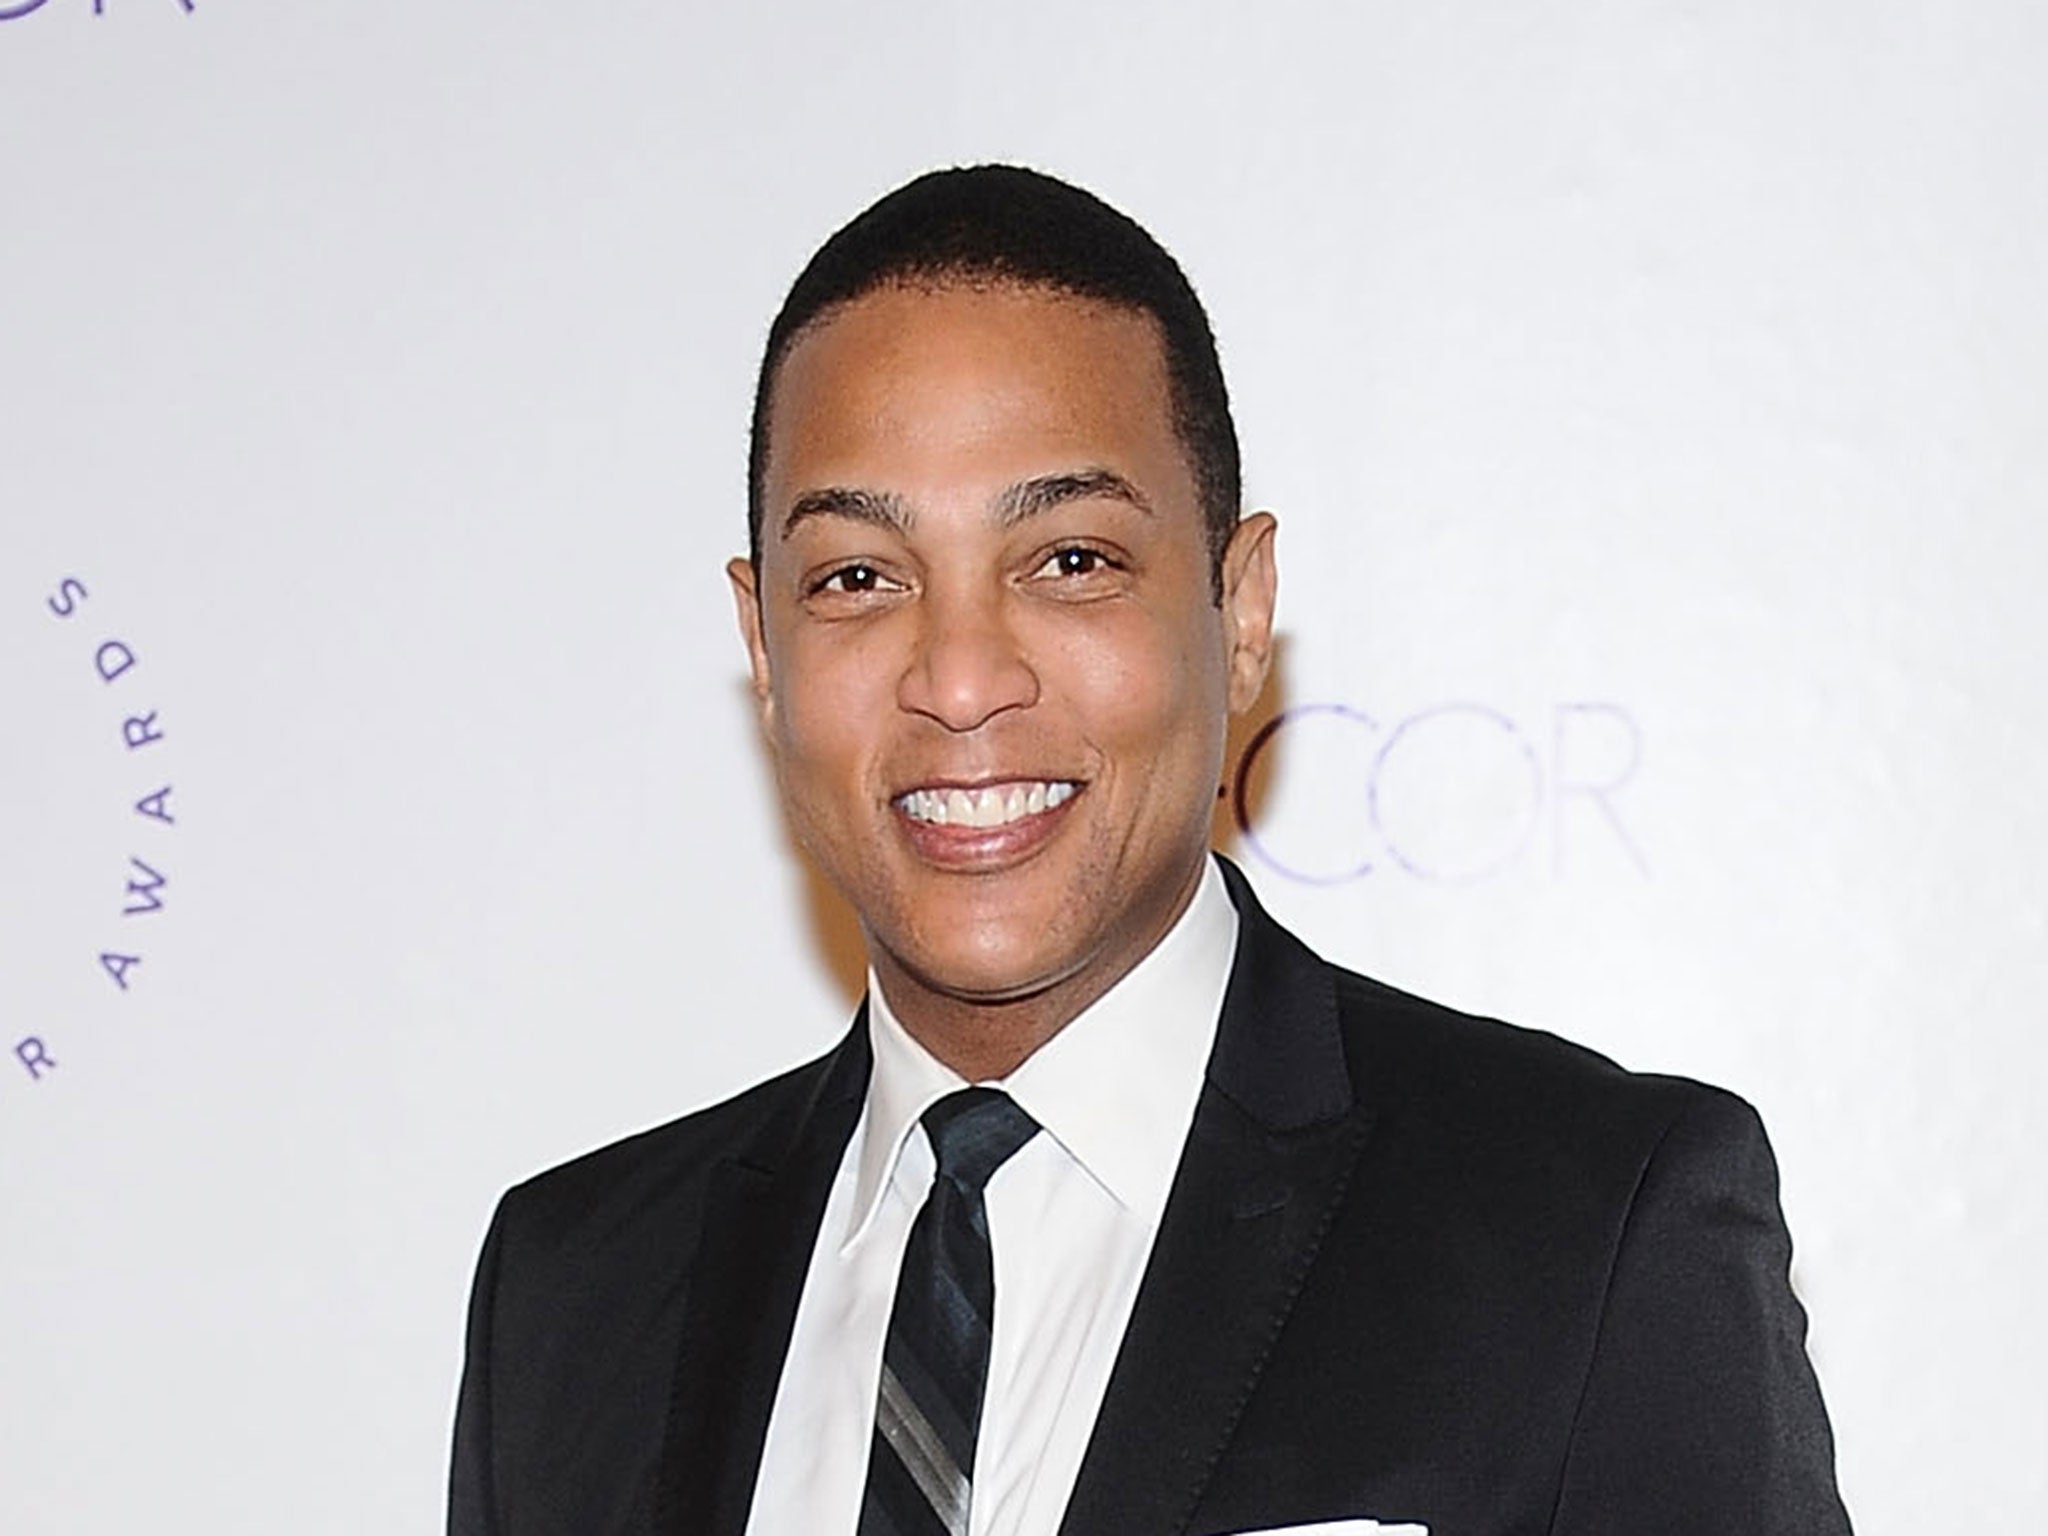 Don Lemon ridiculed for holding sign reading 'n****r' and asking